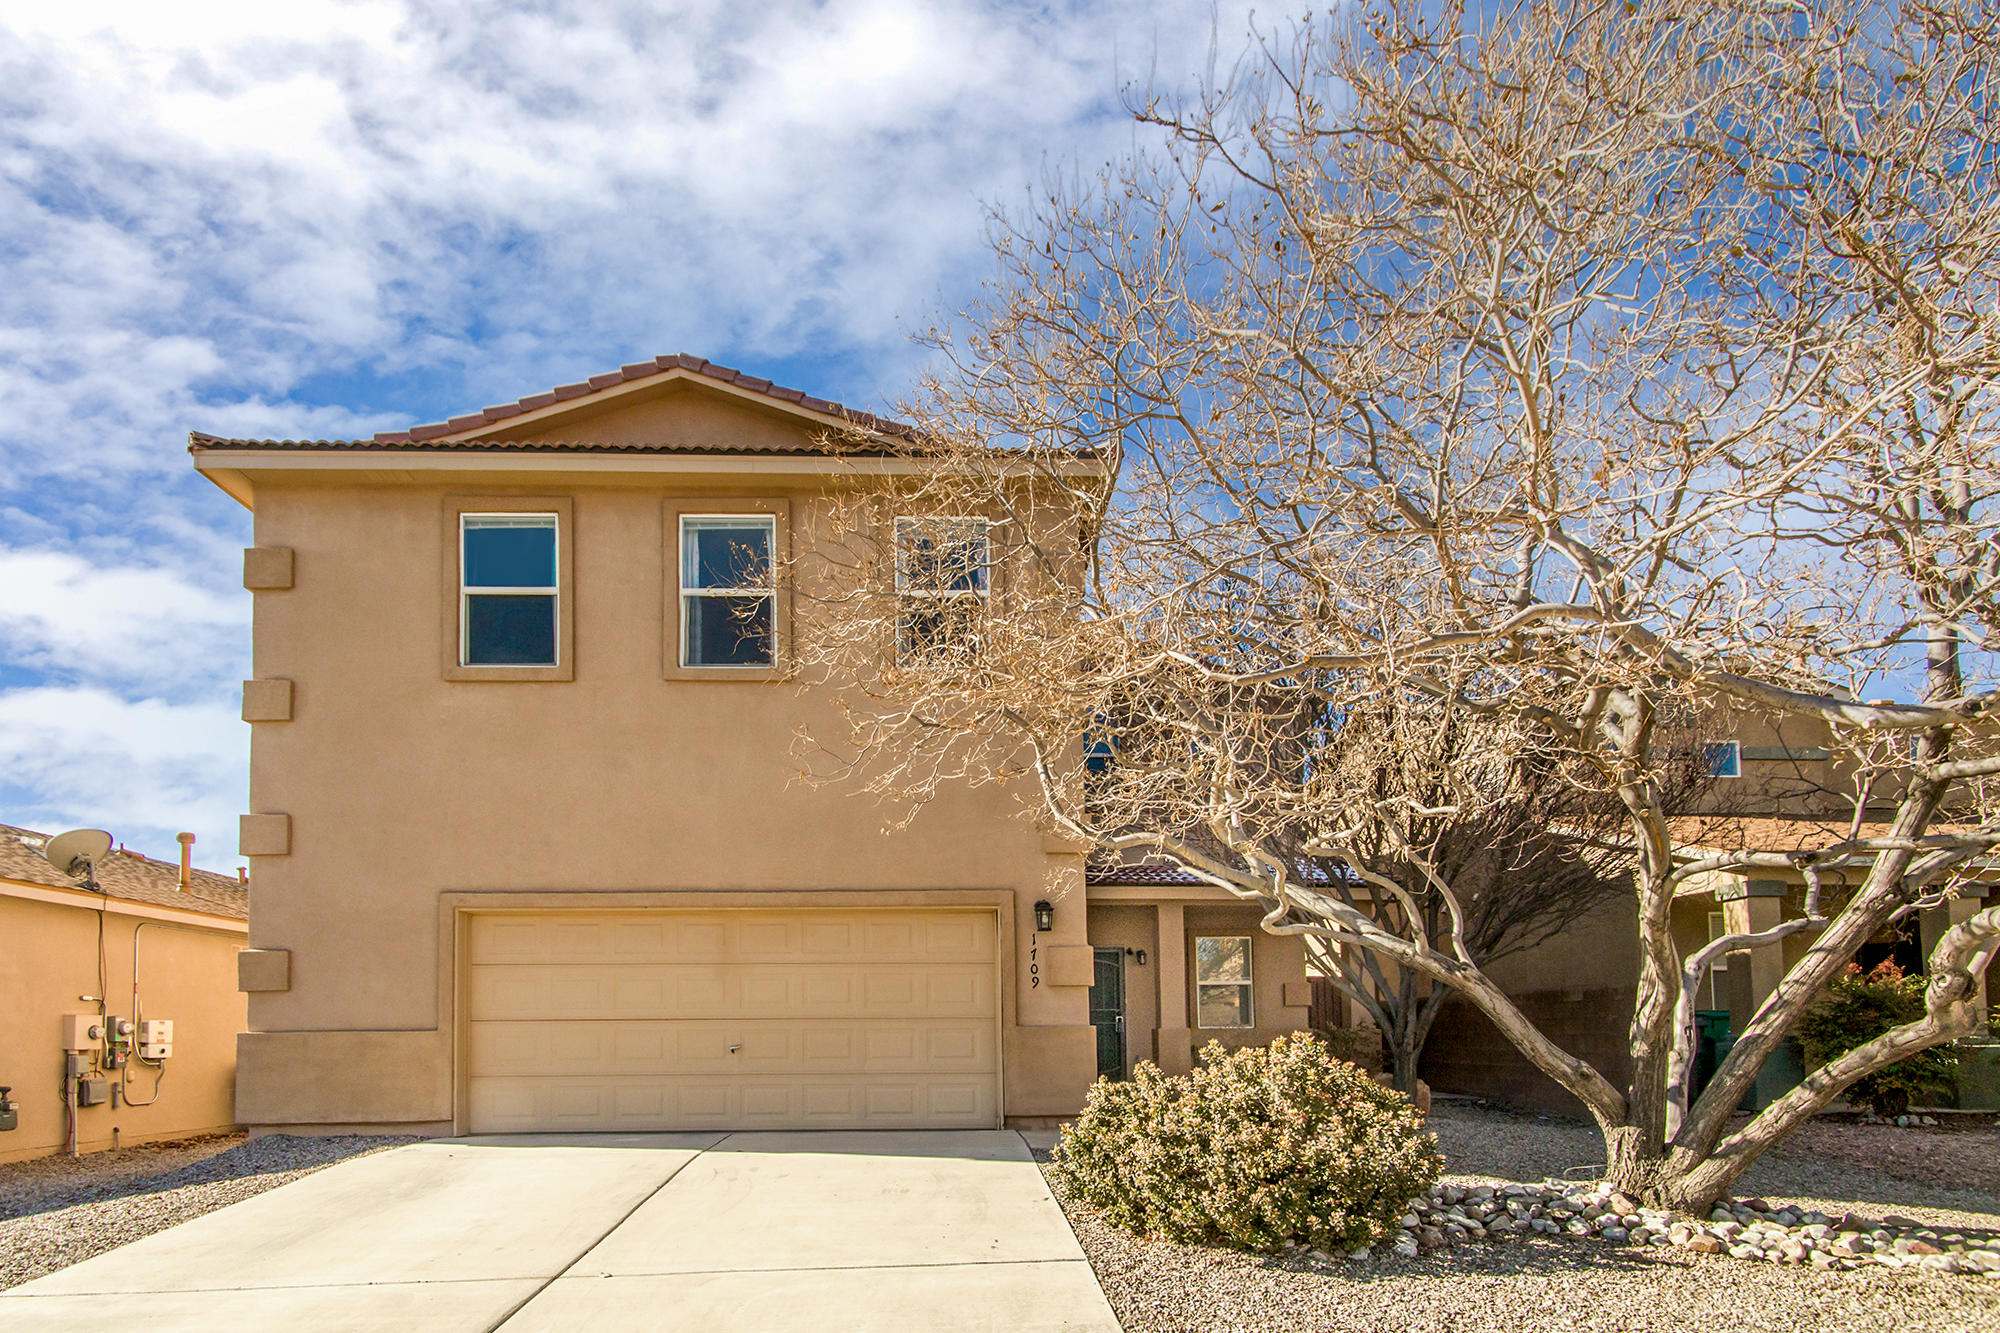 Terrific open floor plan in popular Cabezon neighborhood!  3 large bedrooms plus HUGE loft.  Tons of storage space!  Large kitchen with stainless steel appliances, gas stove, an abundance of cabinet storage and counter preparation space, and a pantry.   Great room has a corner gas fireplace.  Owner's suite is light and bright and boasts a corner gas fireplace, large walk-in closet, double sinks and a soaking tub.  Ceiling fans throughout.   2.5 car garage has extra space and storage racks.  Spacious backyard with mature trees.   Large patio with sun shade.  Fantastic neighborhood with parks, playgrounds, walking trails and city pool.  Convenient to shopping, dining and medical facilities.  Immediate occupancy available!